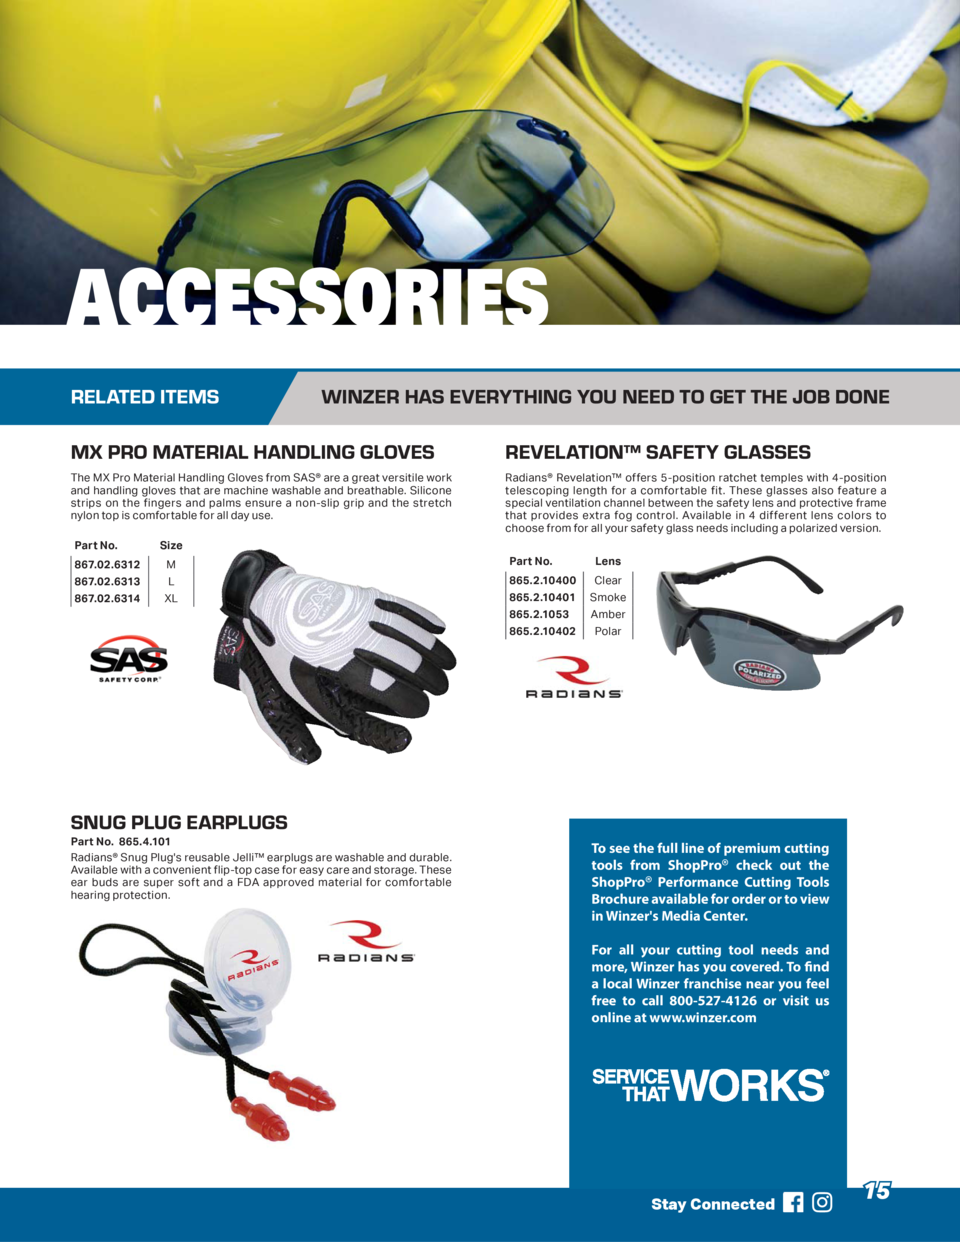 ACCESSORIES RELATED ITEMS  WINZER HAS EVERYTHING YOU NEED TO GET THE JOB DONE  MX PRO MATERIAL HANDLING GLOVES  REVELATION...